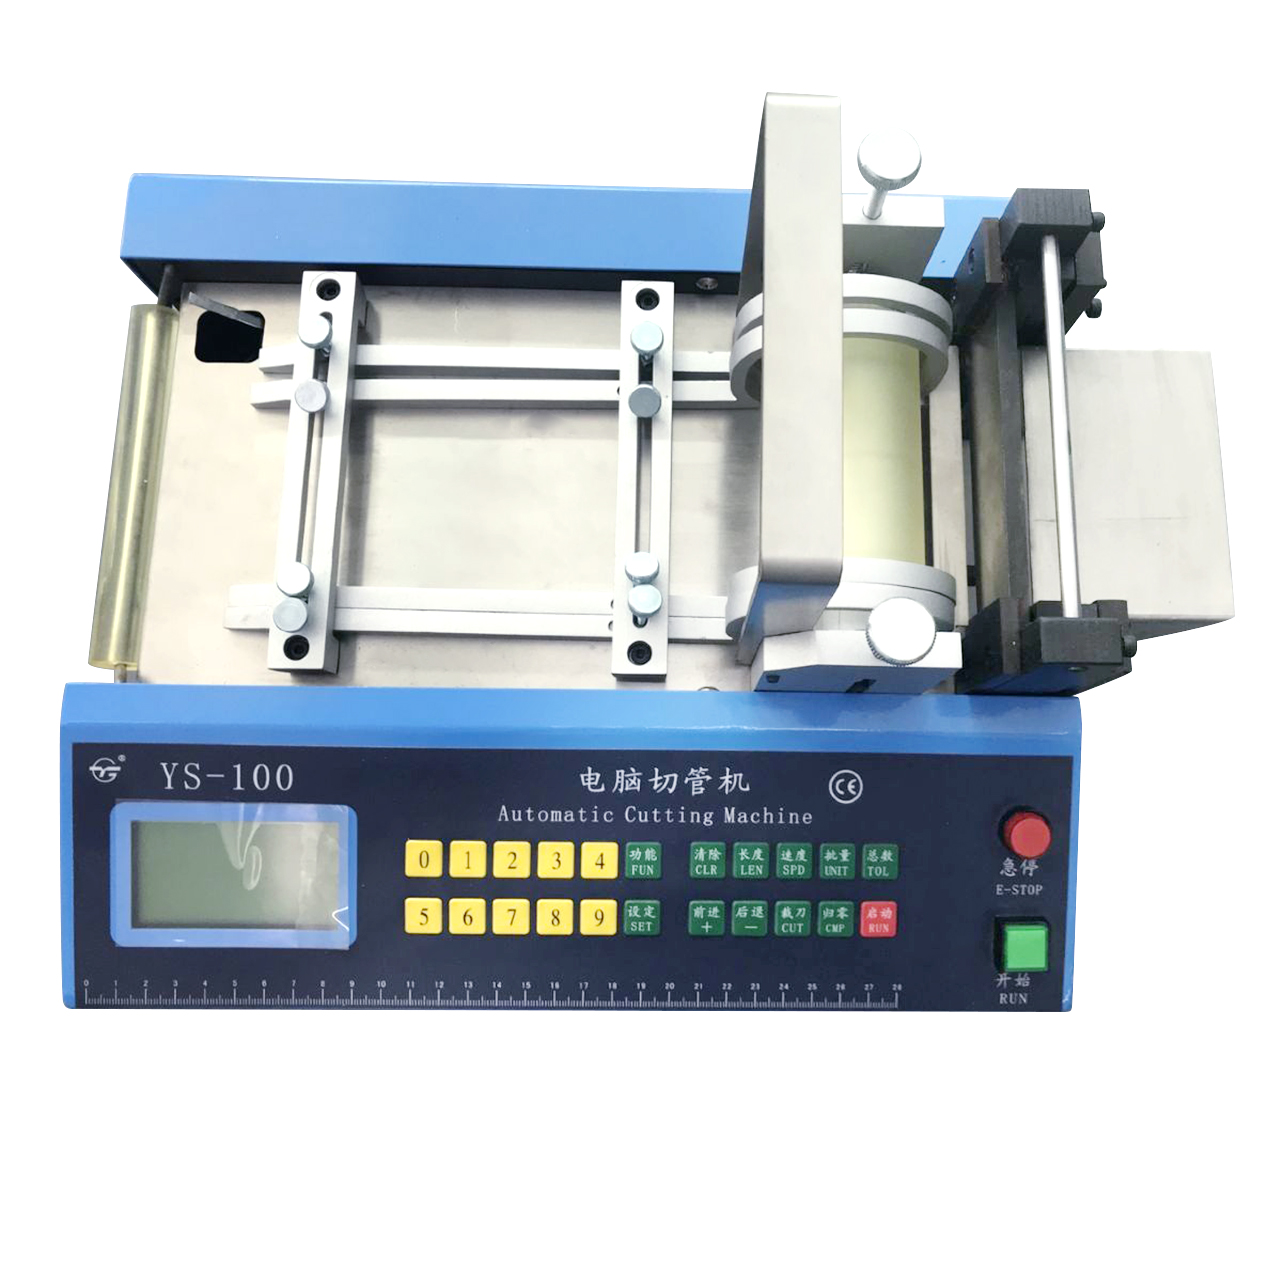 Auto Heat-shrink Tube Cable Pipe Cutting Machine Automatic Cable PVC Pipe Cutter 110V/220V